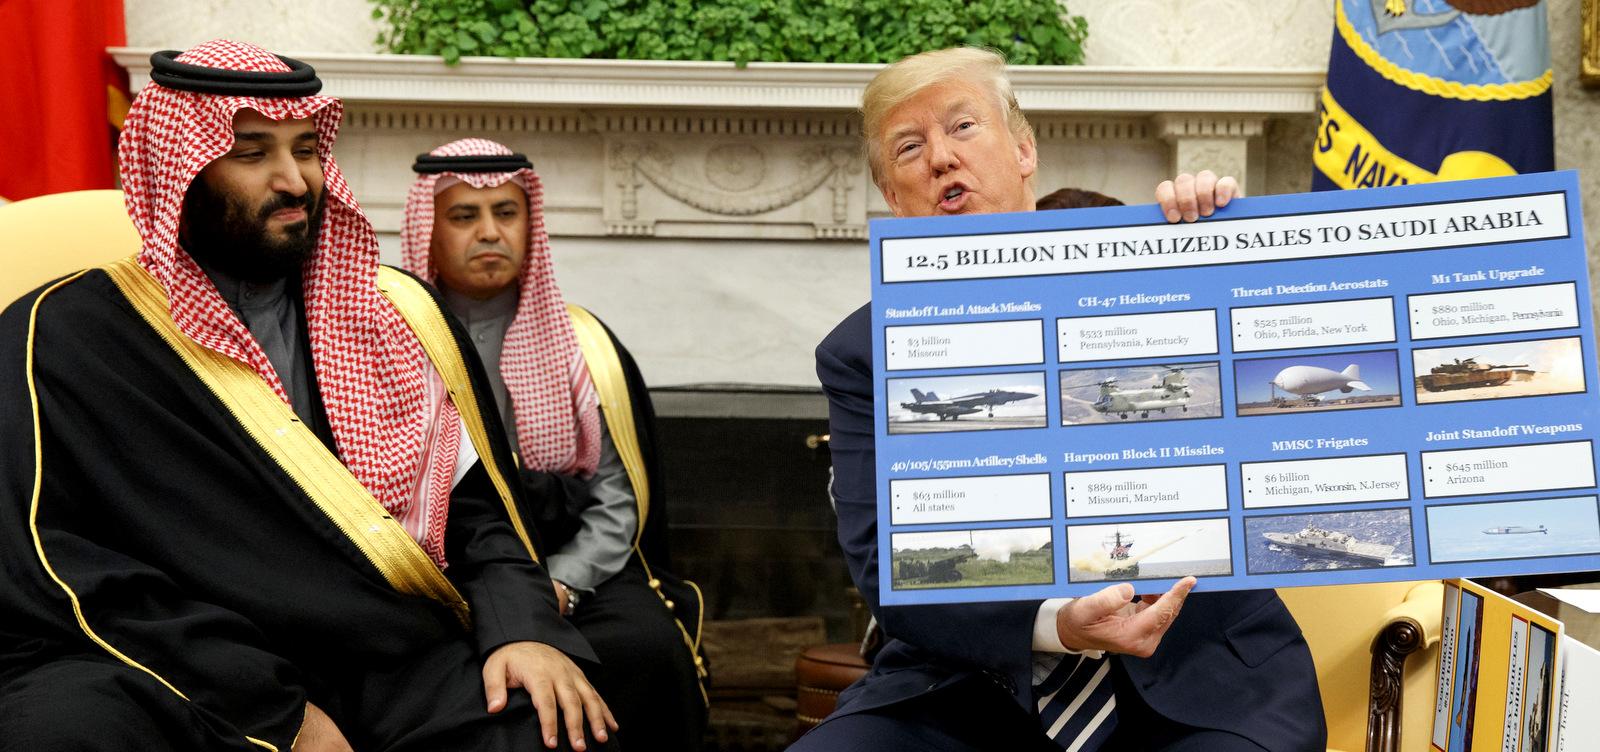 US Taxpayers On the Hook for Nearly $1 Billion in Saudi Arabia's Recent Missile Defense Purchase